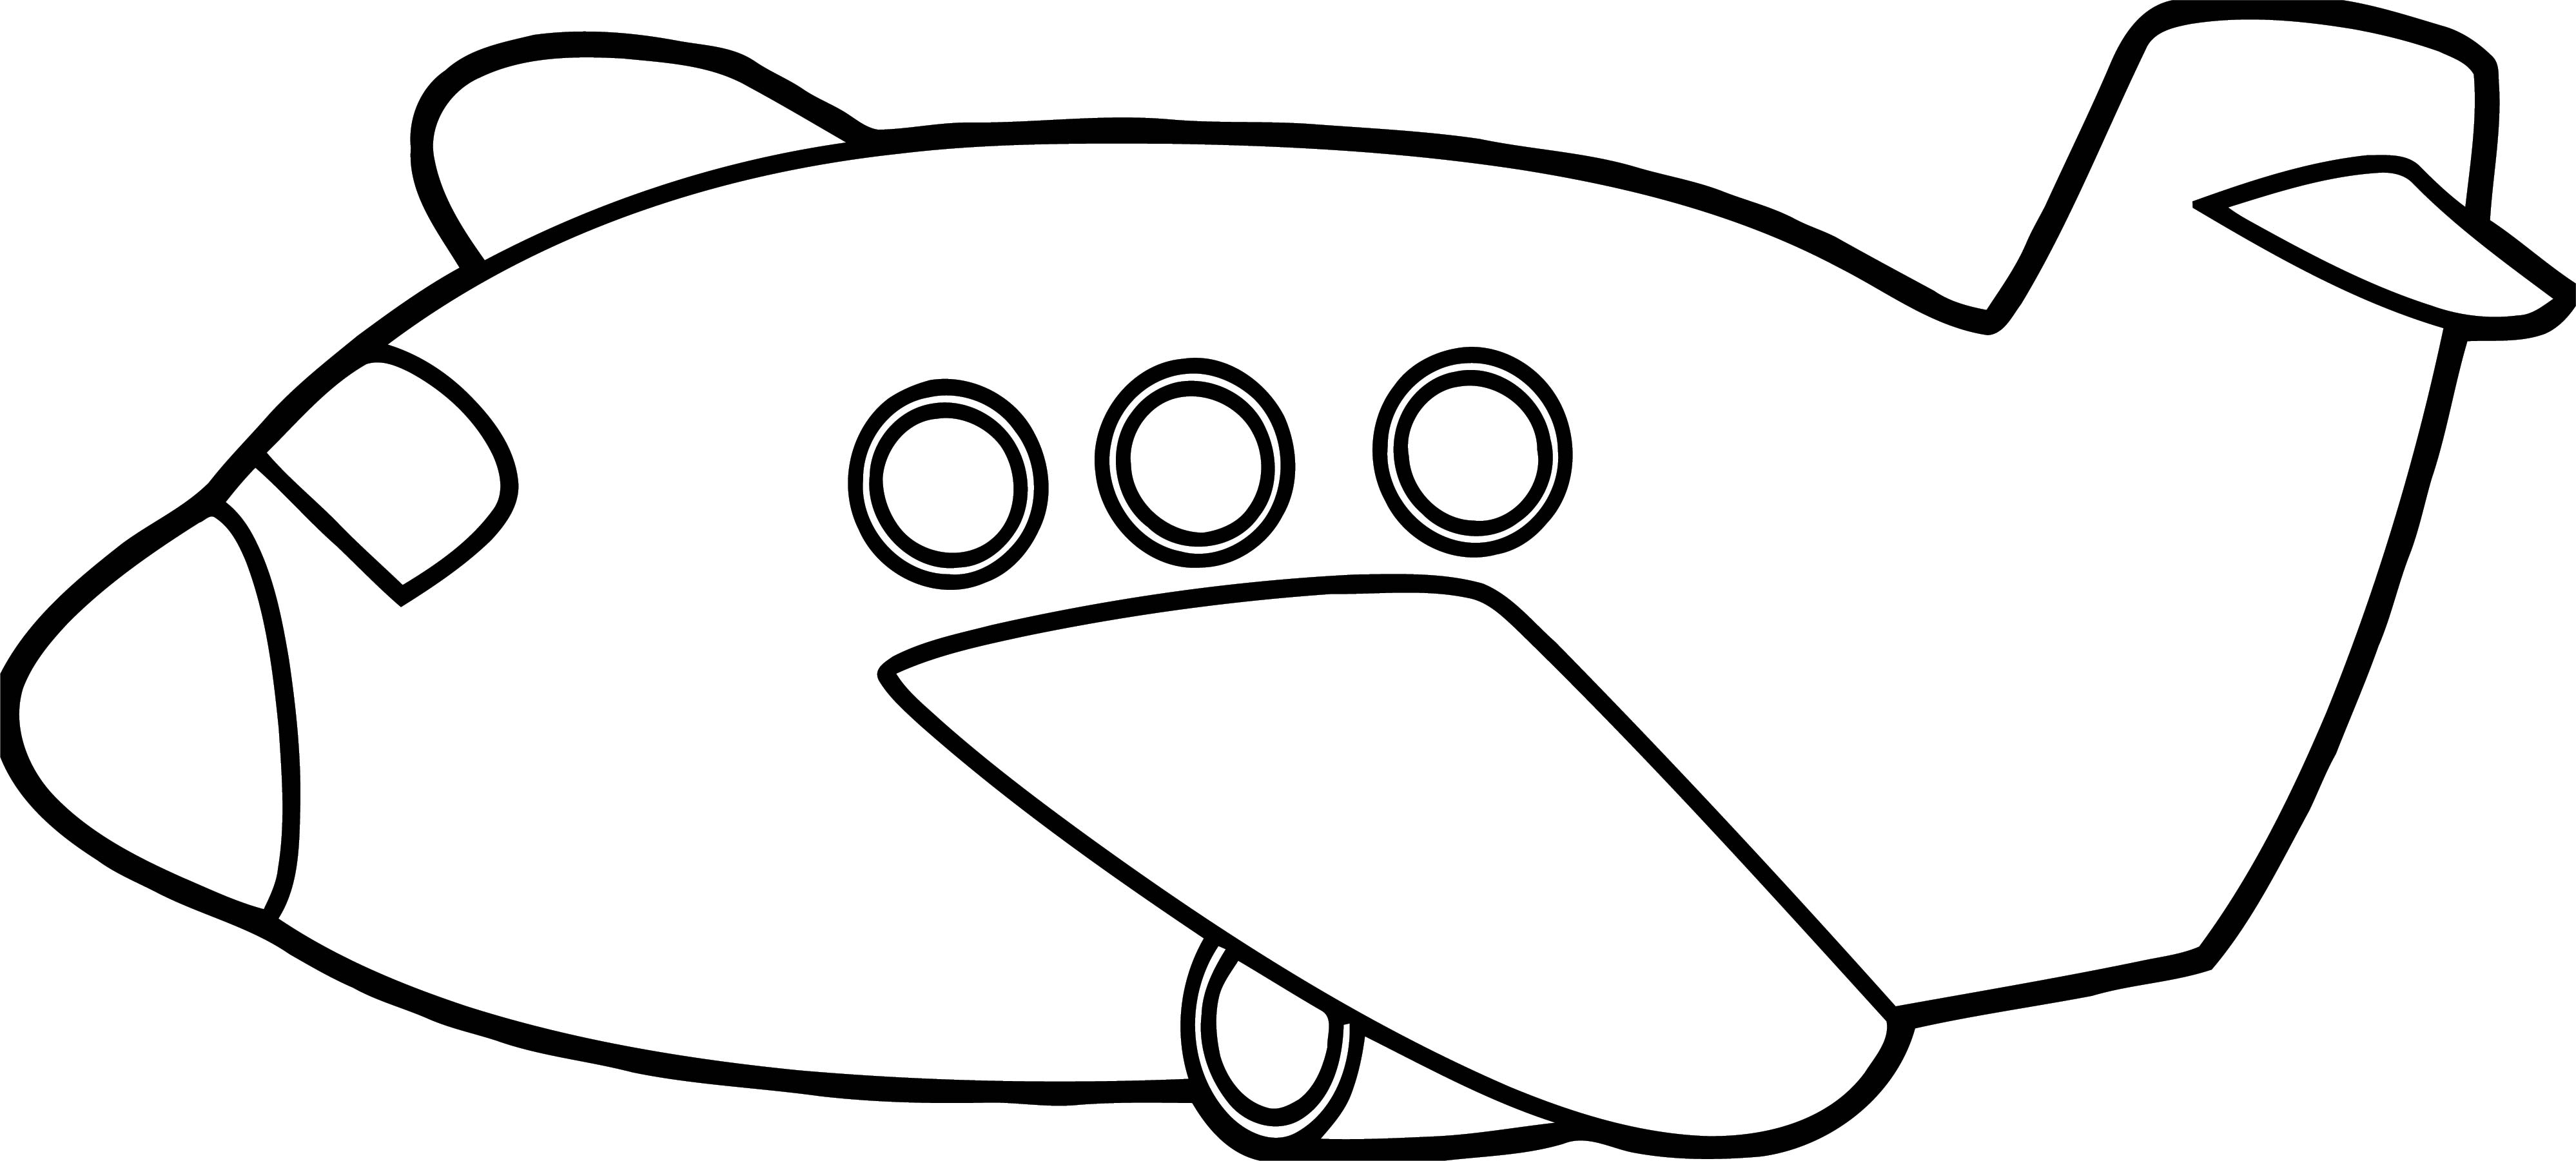 Plane We Coloring Page 15